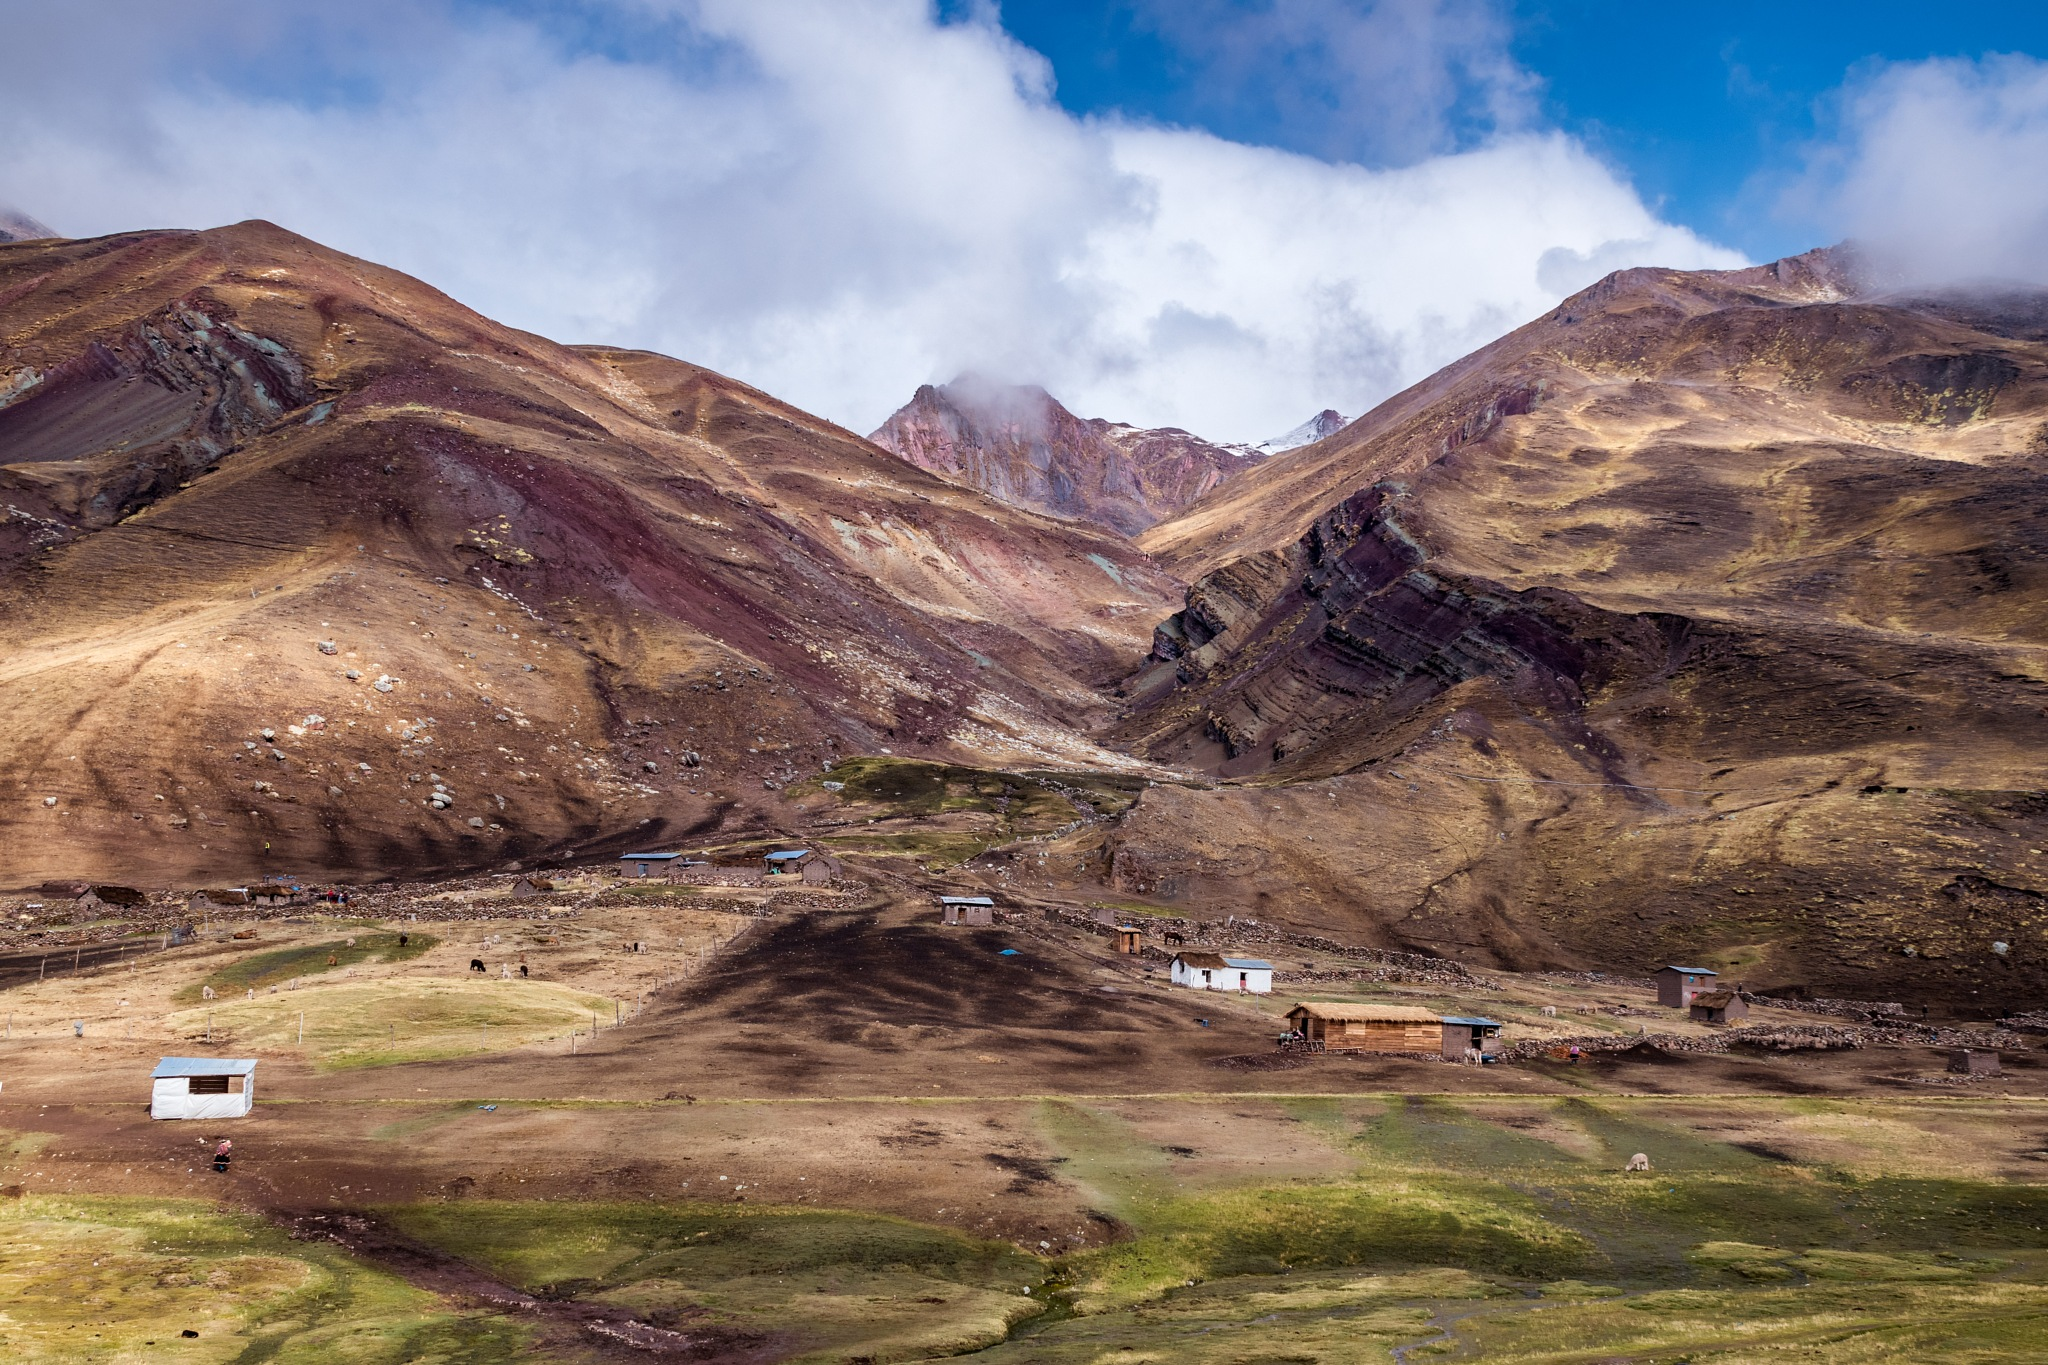 Landscape in the Andes of Peru by Marianne Drews